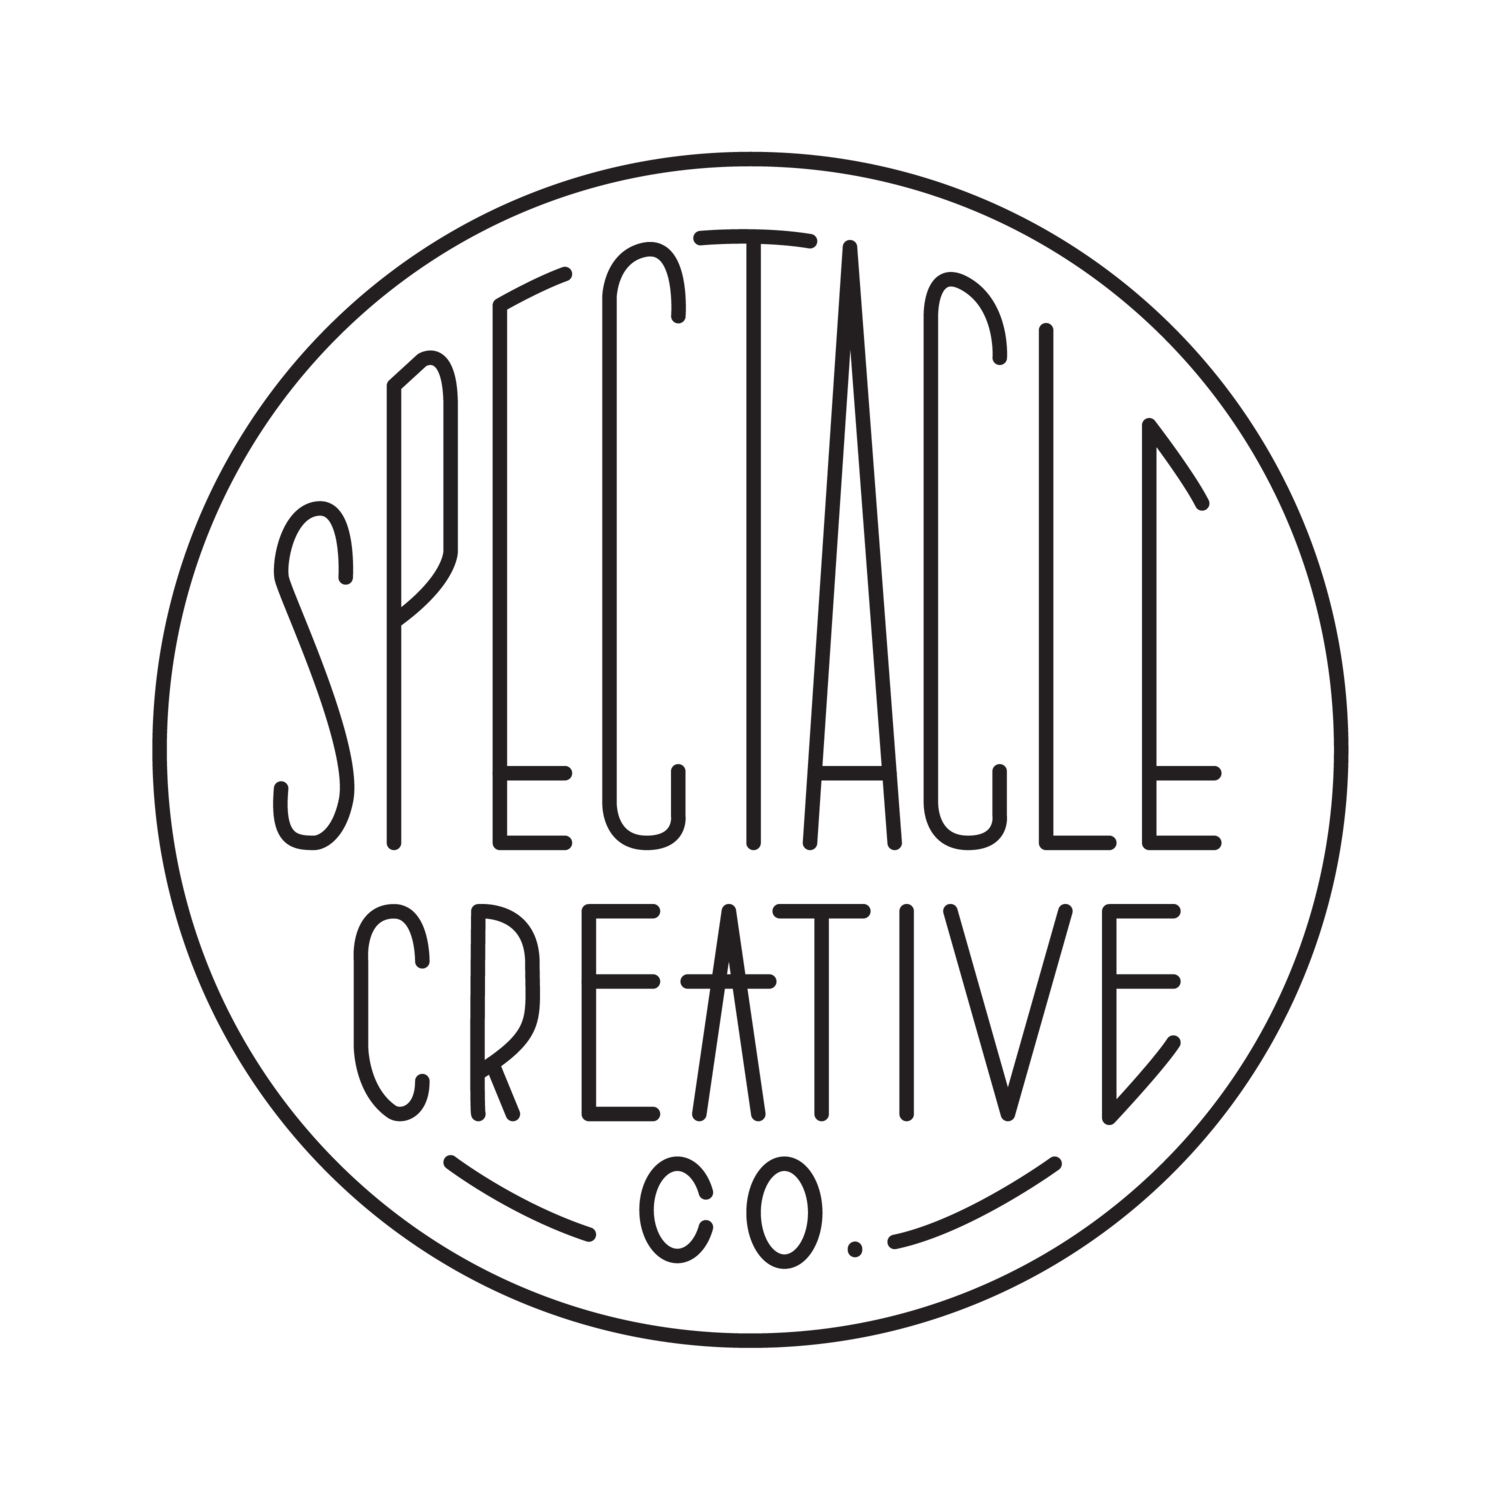 Spectacle Creative Co.